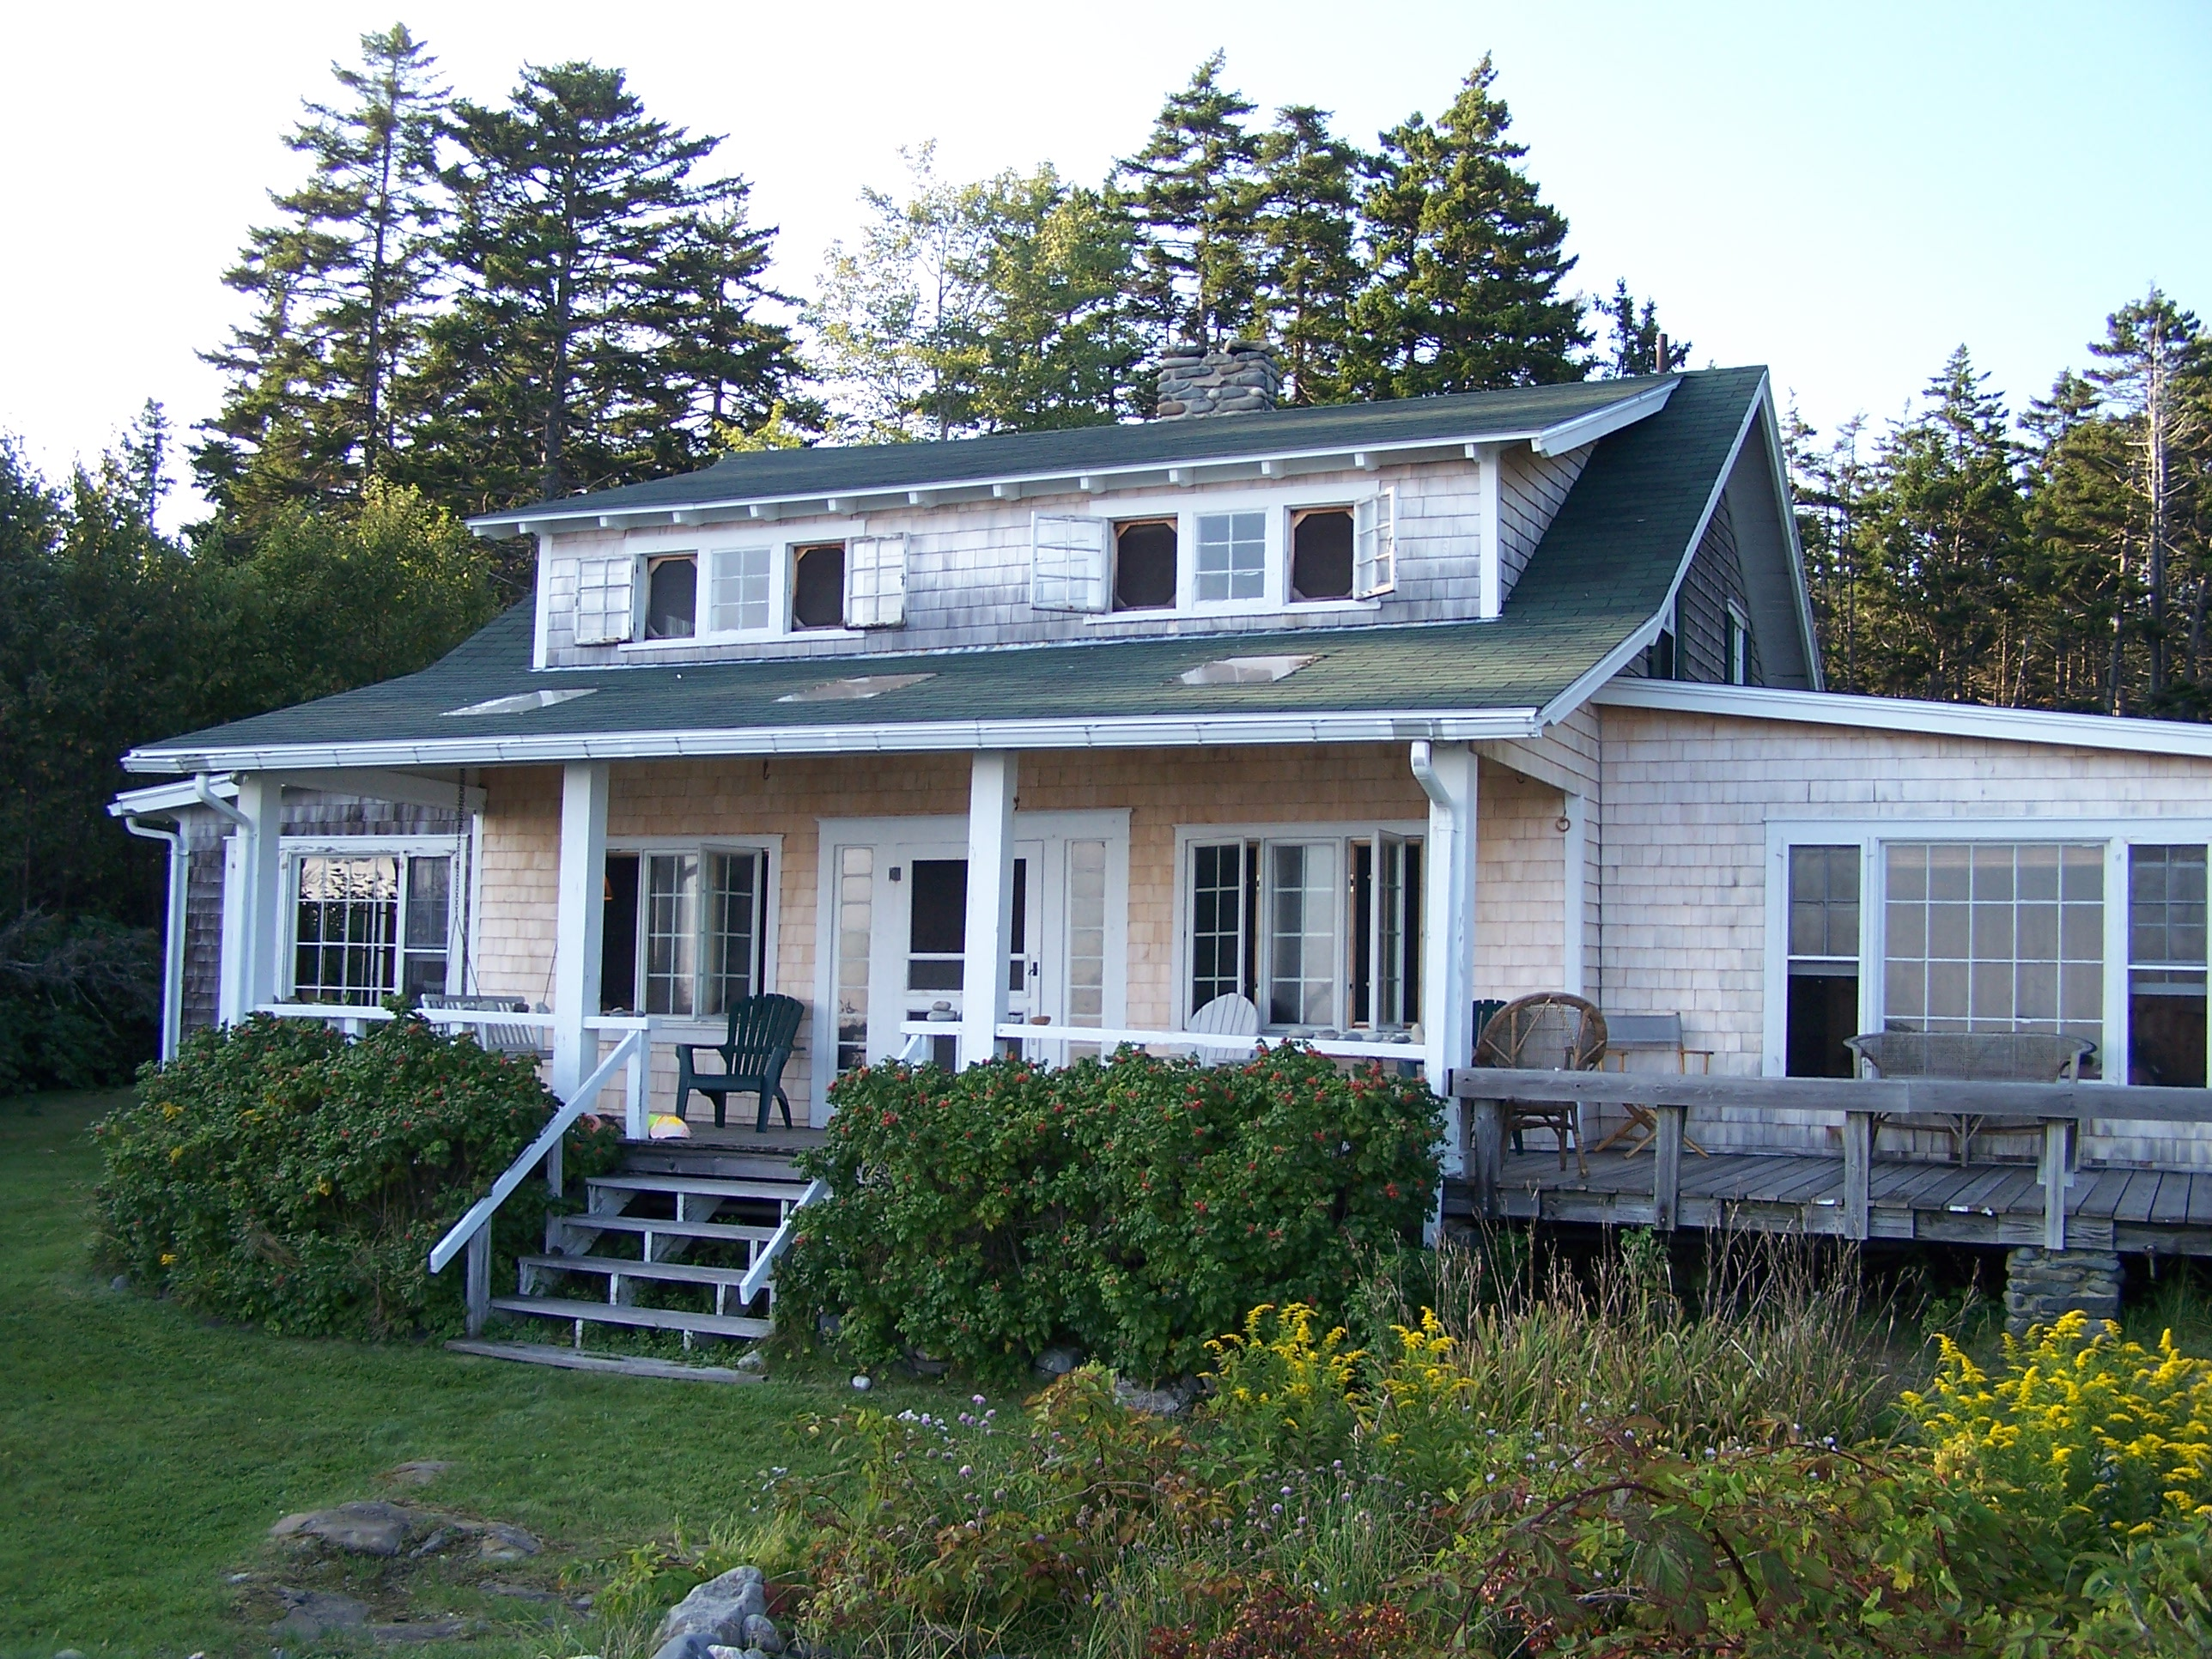 house maine rentals cottage beach cottages htm exterior view sea glass rental front photo in seaglass vacation of